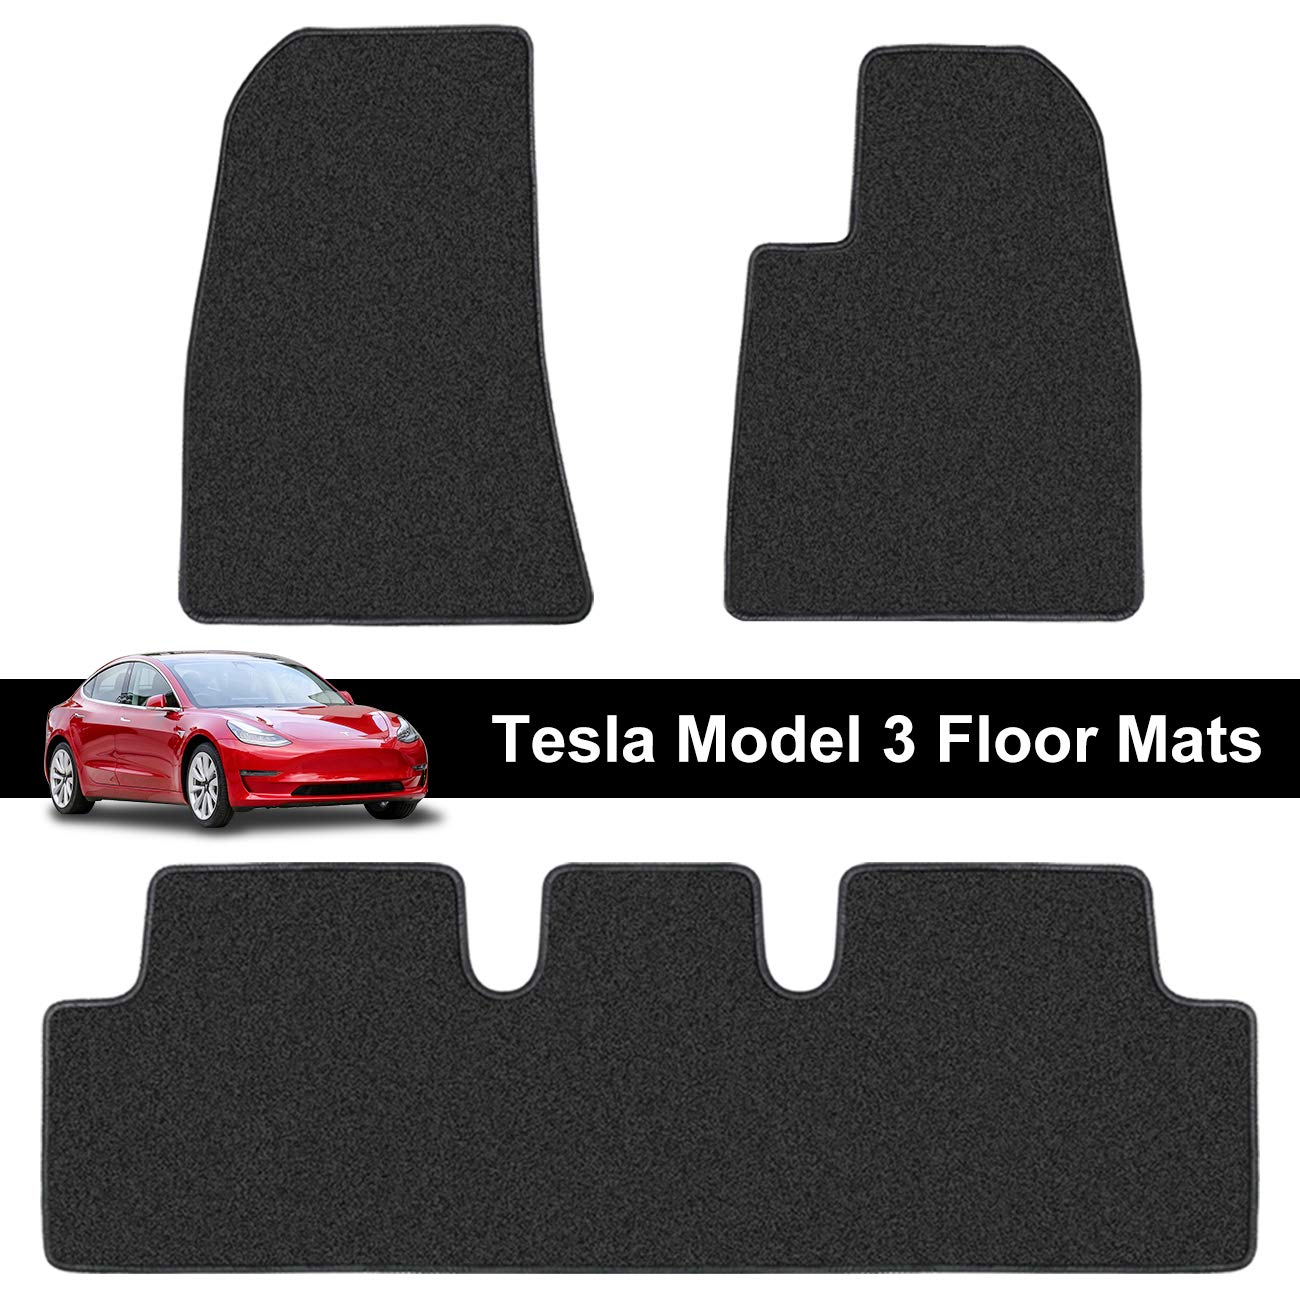 Carsio Black Rubber Tailored Car Floor Mats To fit Tesla Model S 3mm 3pc Set